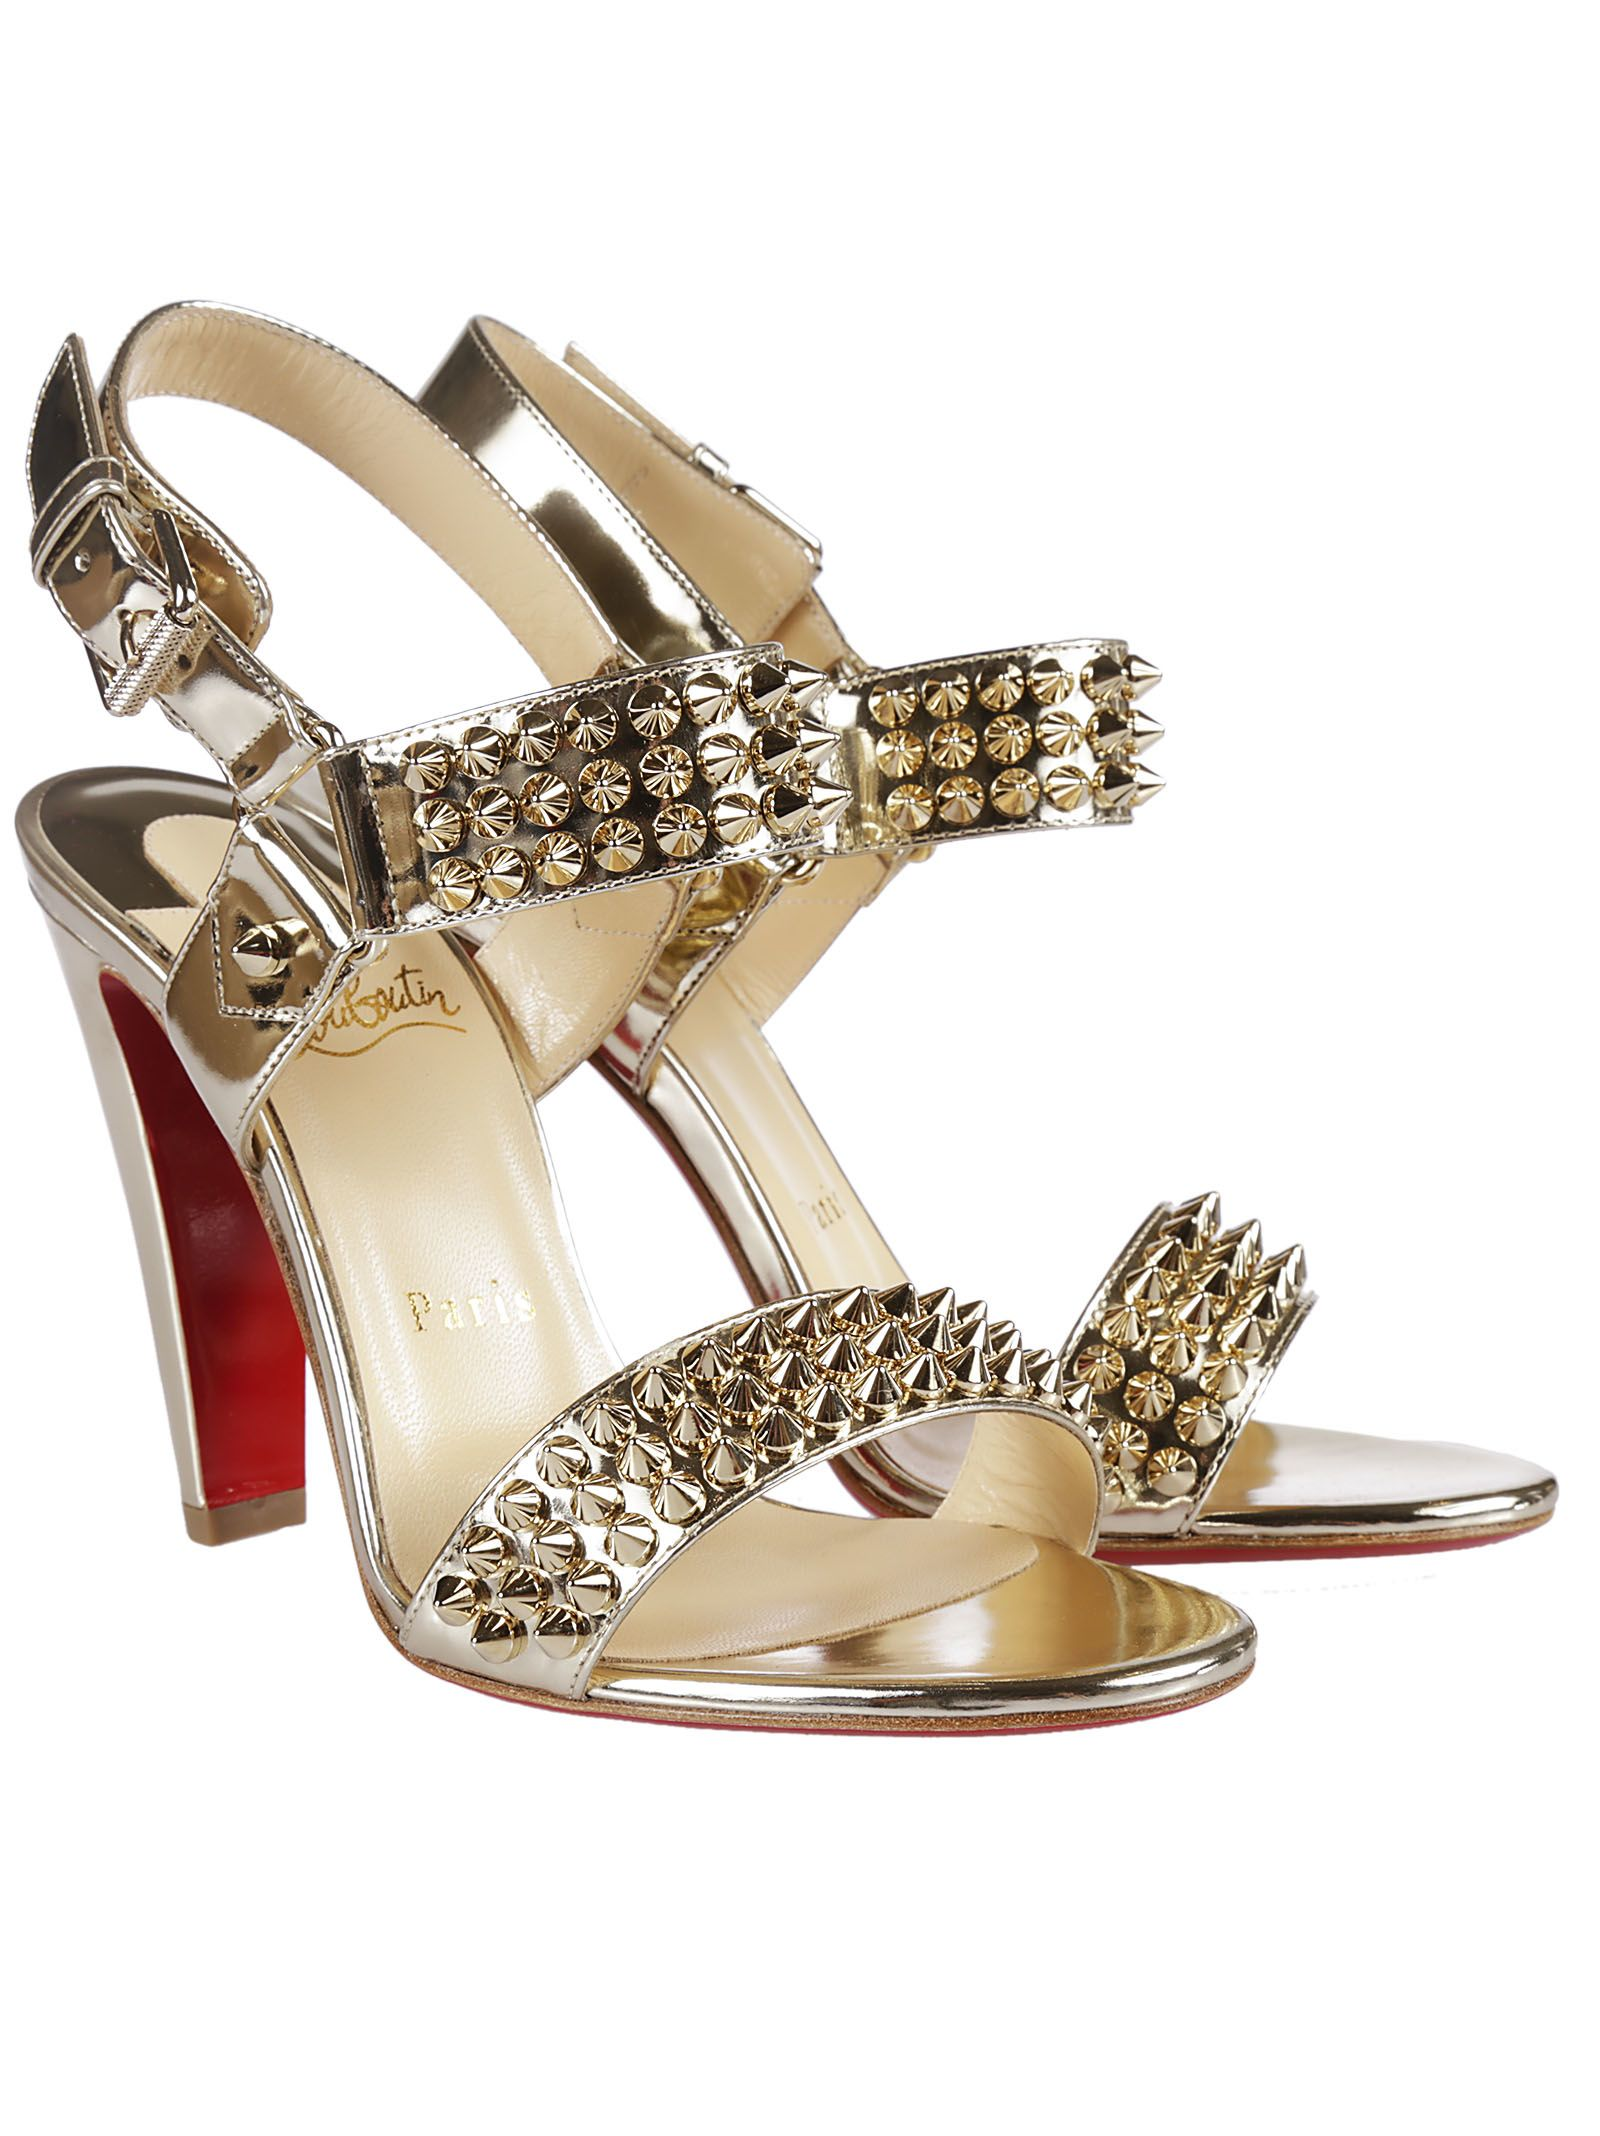 ce9861bf052 official light gold christian louboutin sandals shoes 79211 d4719